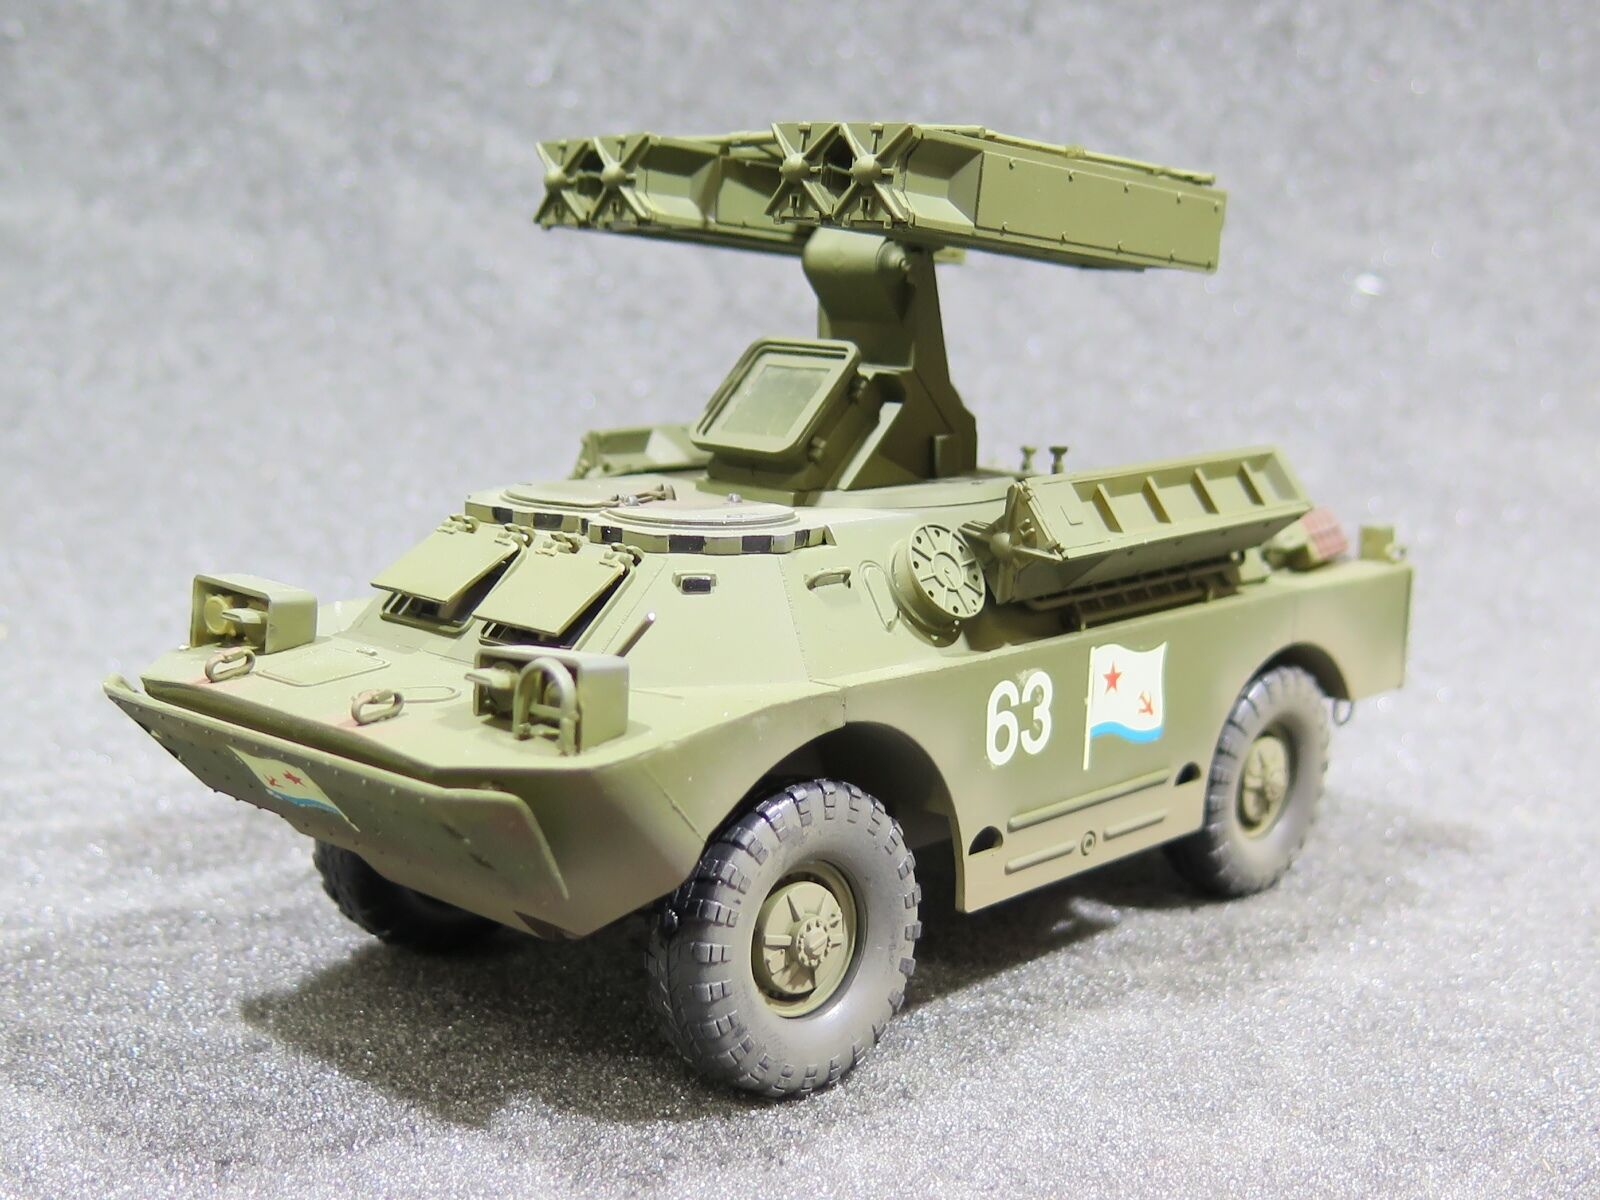 MI0619 1 35 PRO BUILT - Plastic Dragon Soviet SA-9 Gaskin Air Defence System